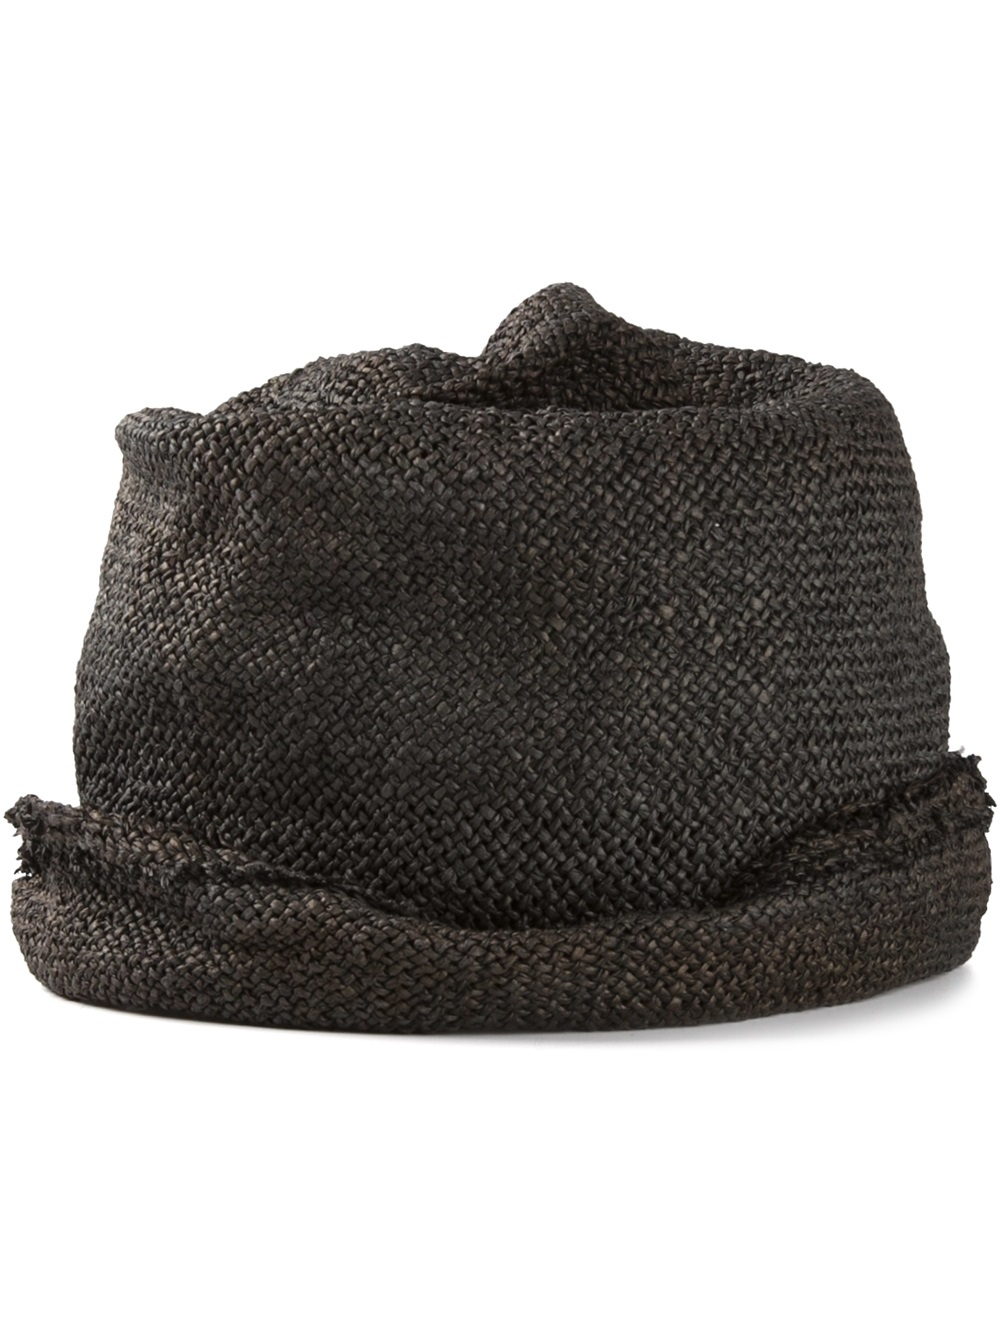 55729e441a3 Lyst - Reinhard Plank Woven Paper Hat in Brown for Men